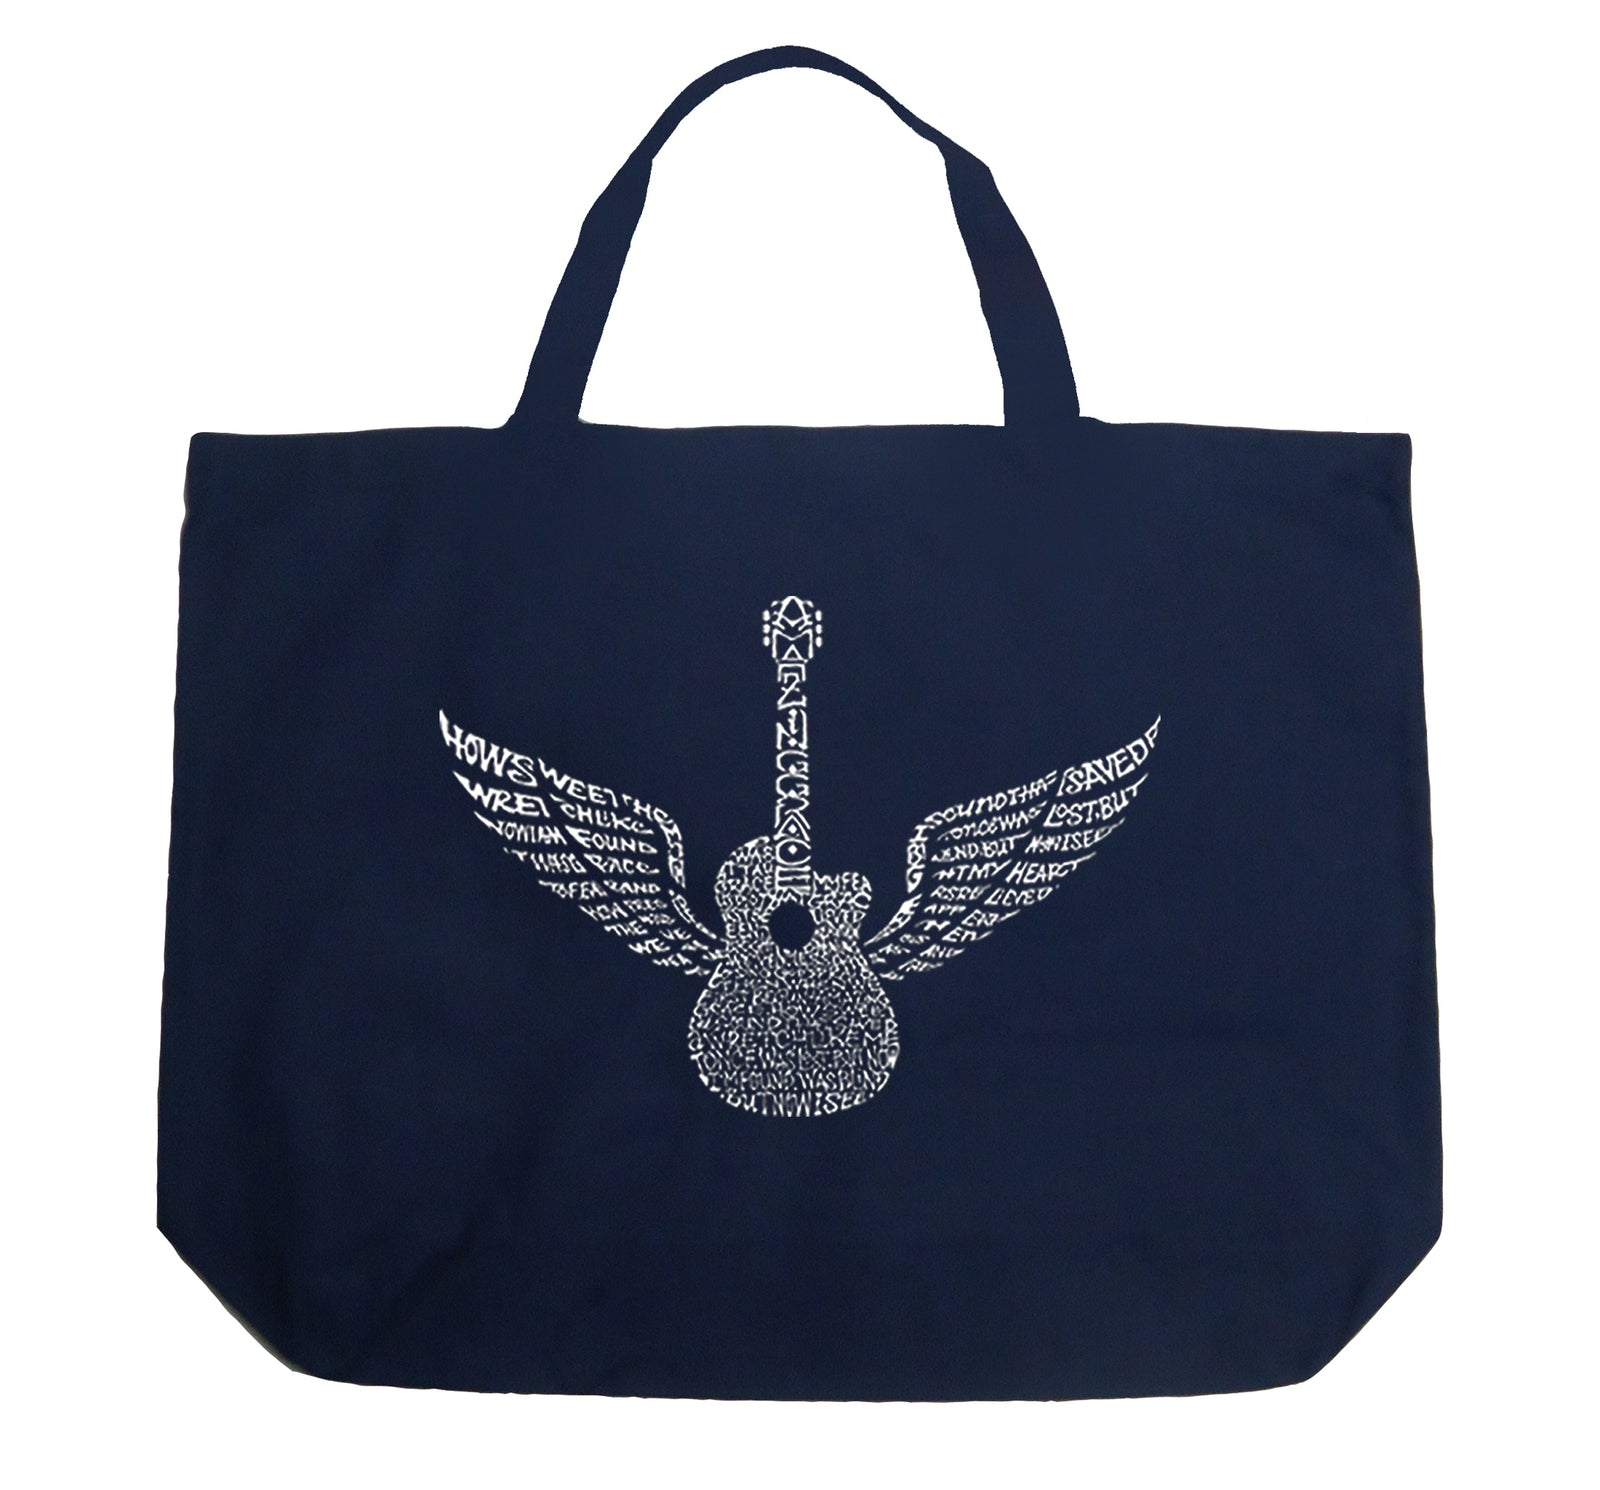 Large Tote Bag - Amazing Grace